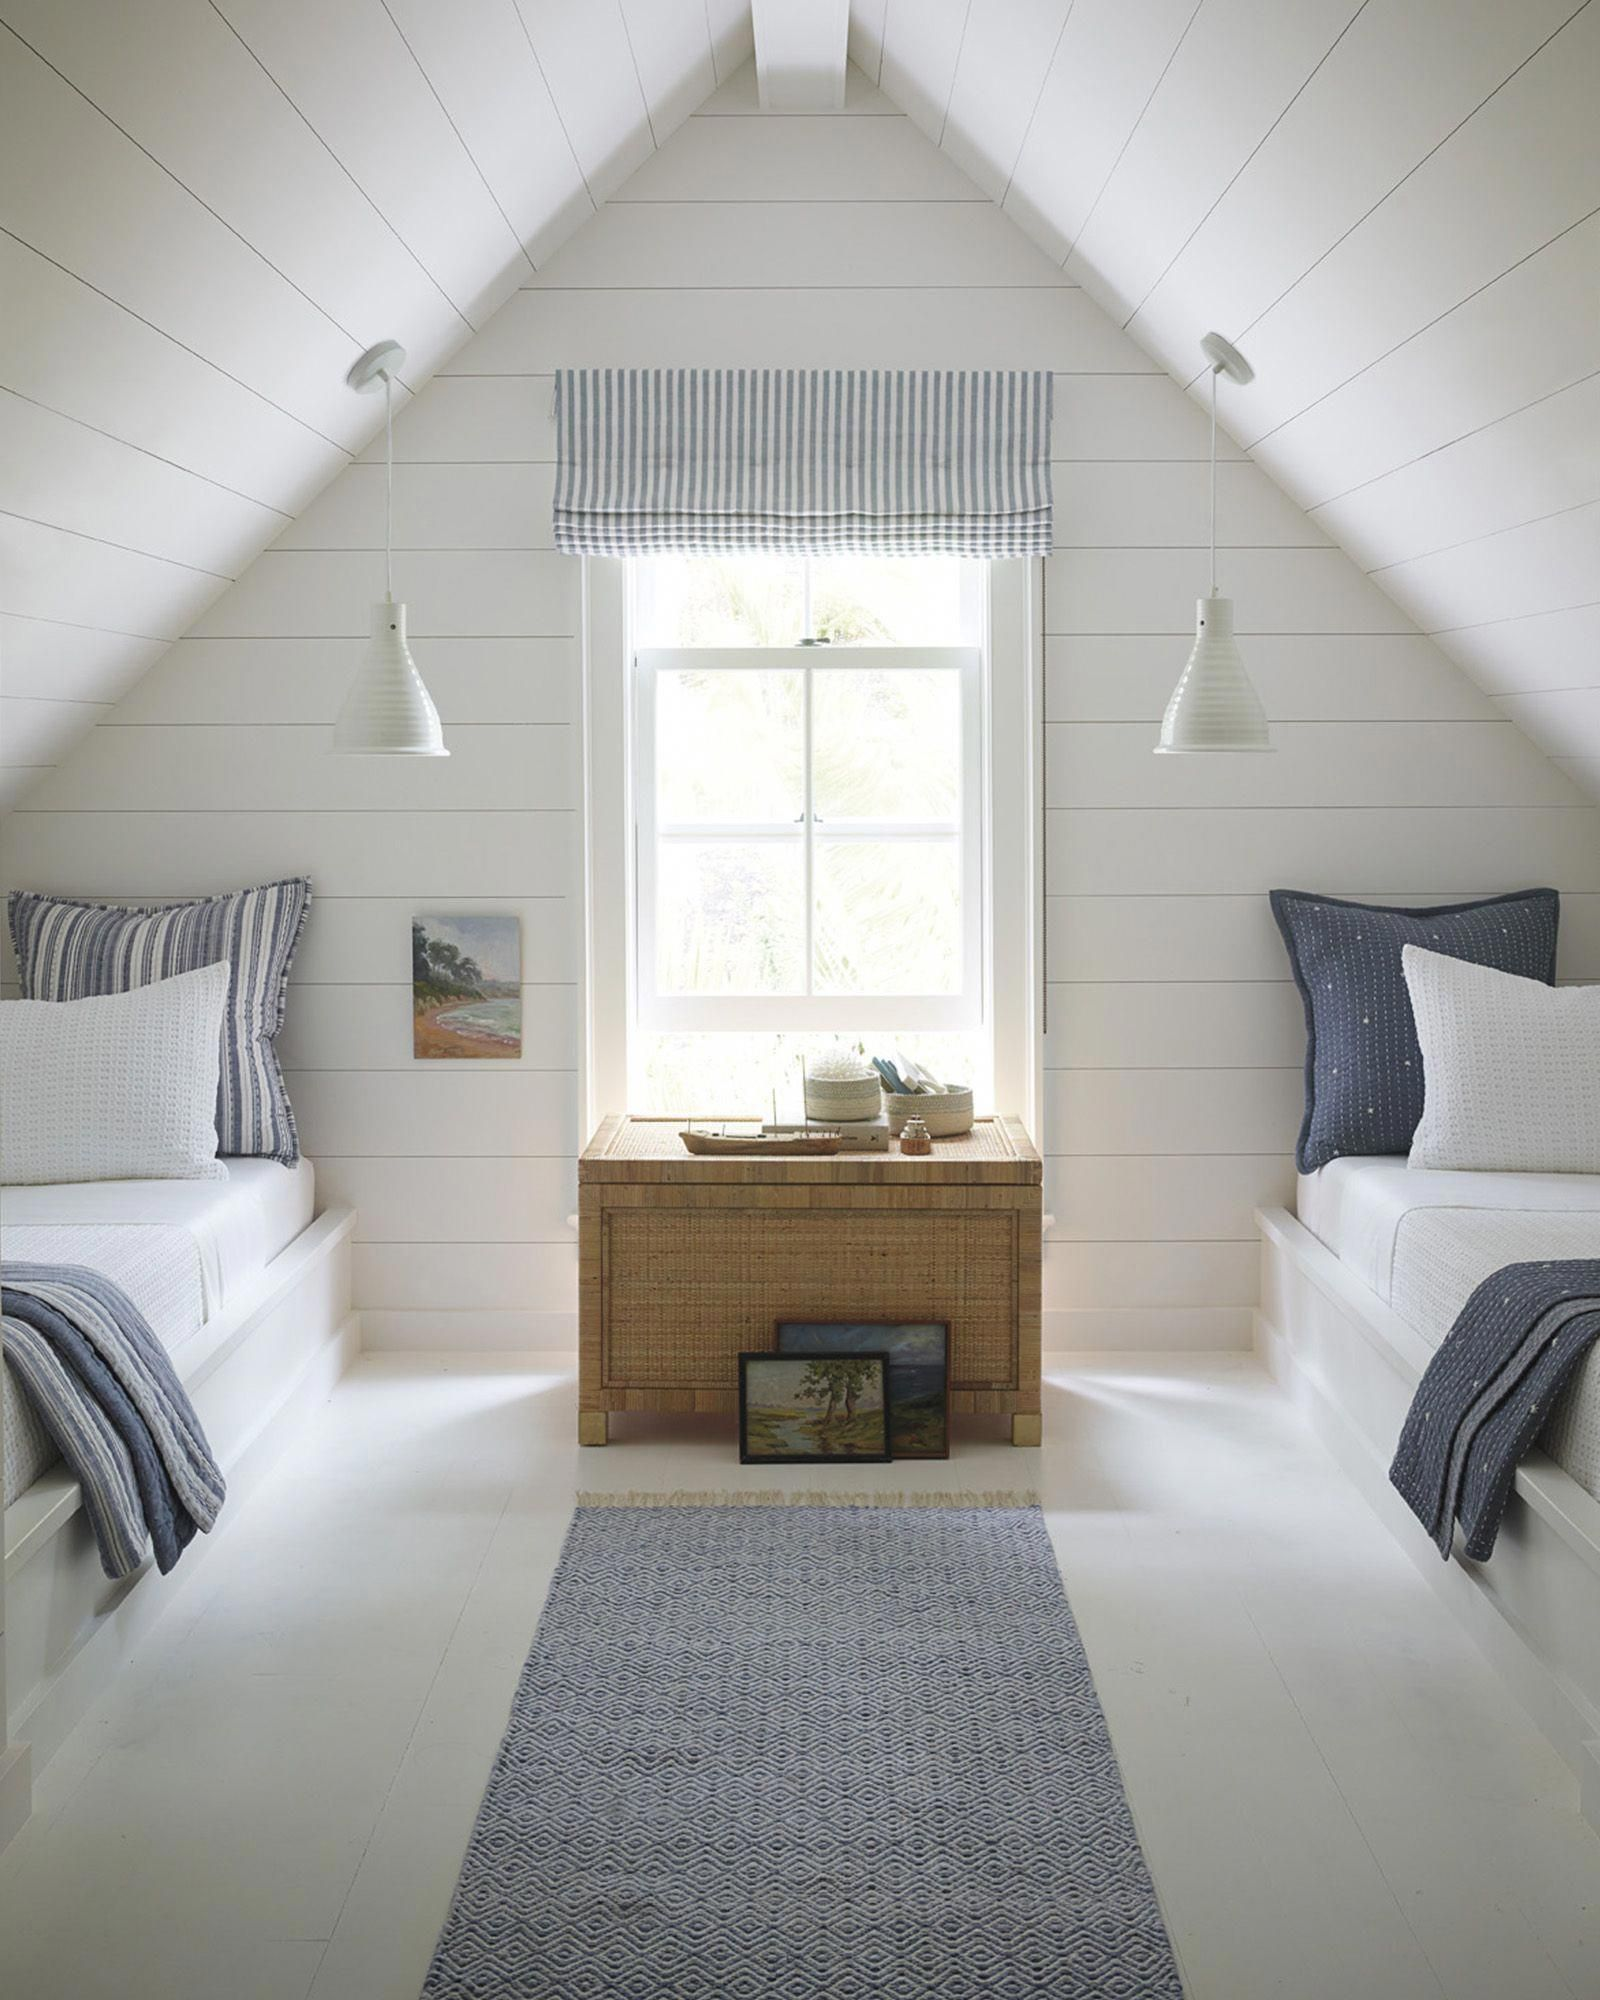 Rooms In Roof Designs: Decor Styles245 - SalePrice:38$ In 2020